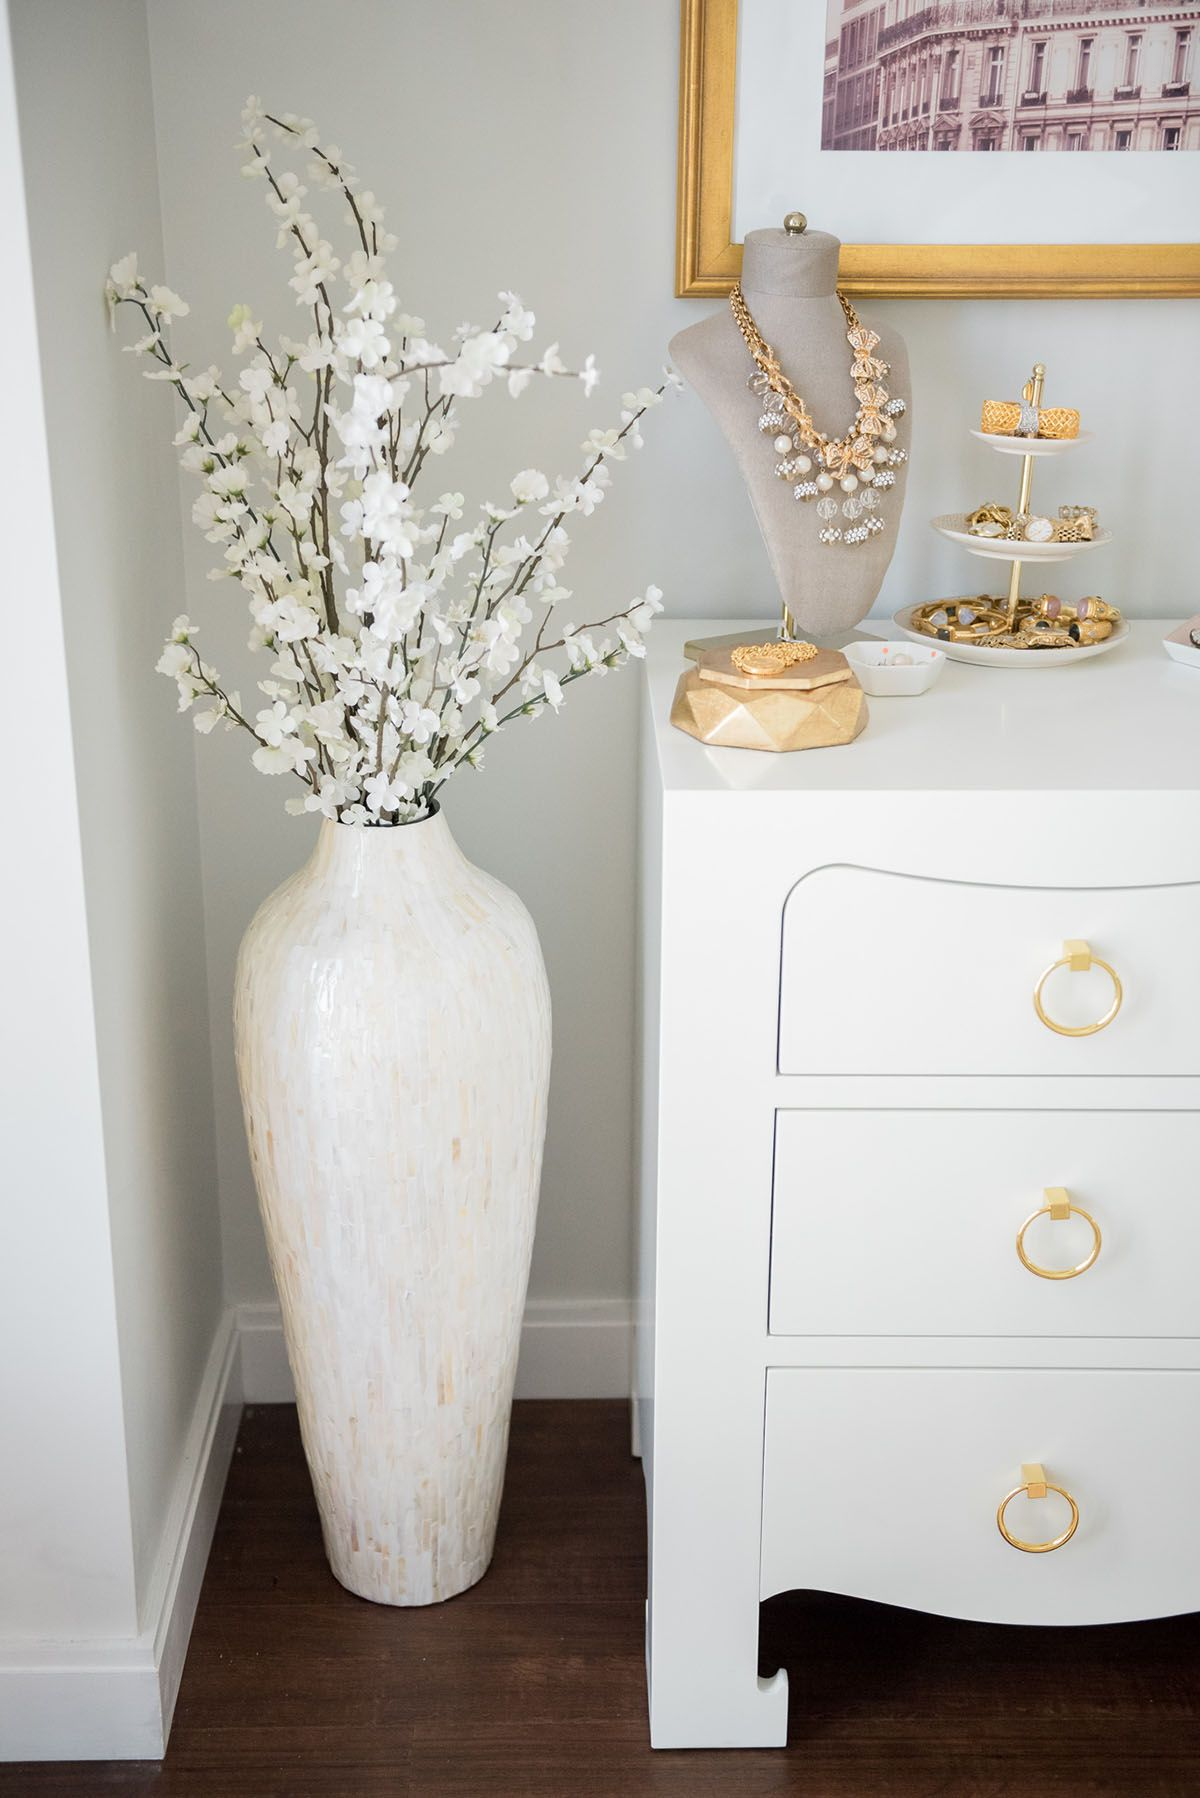 Blogger Jessica Sy Of Bowsandsequins Shares Her Chicago Parisian Chic Bedroom Design Gl Pearly Mosaic Floor Vase Bungalow 5 White Jacqui